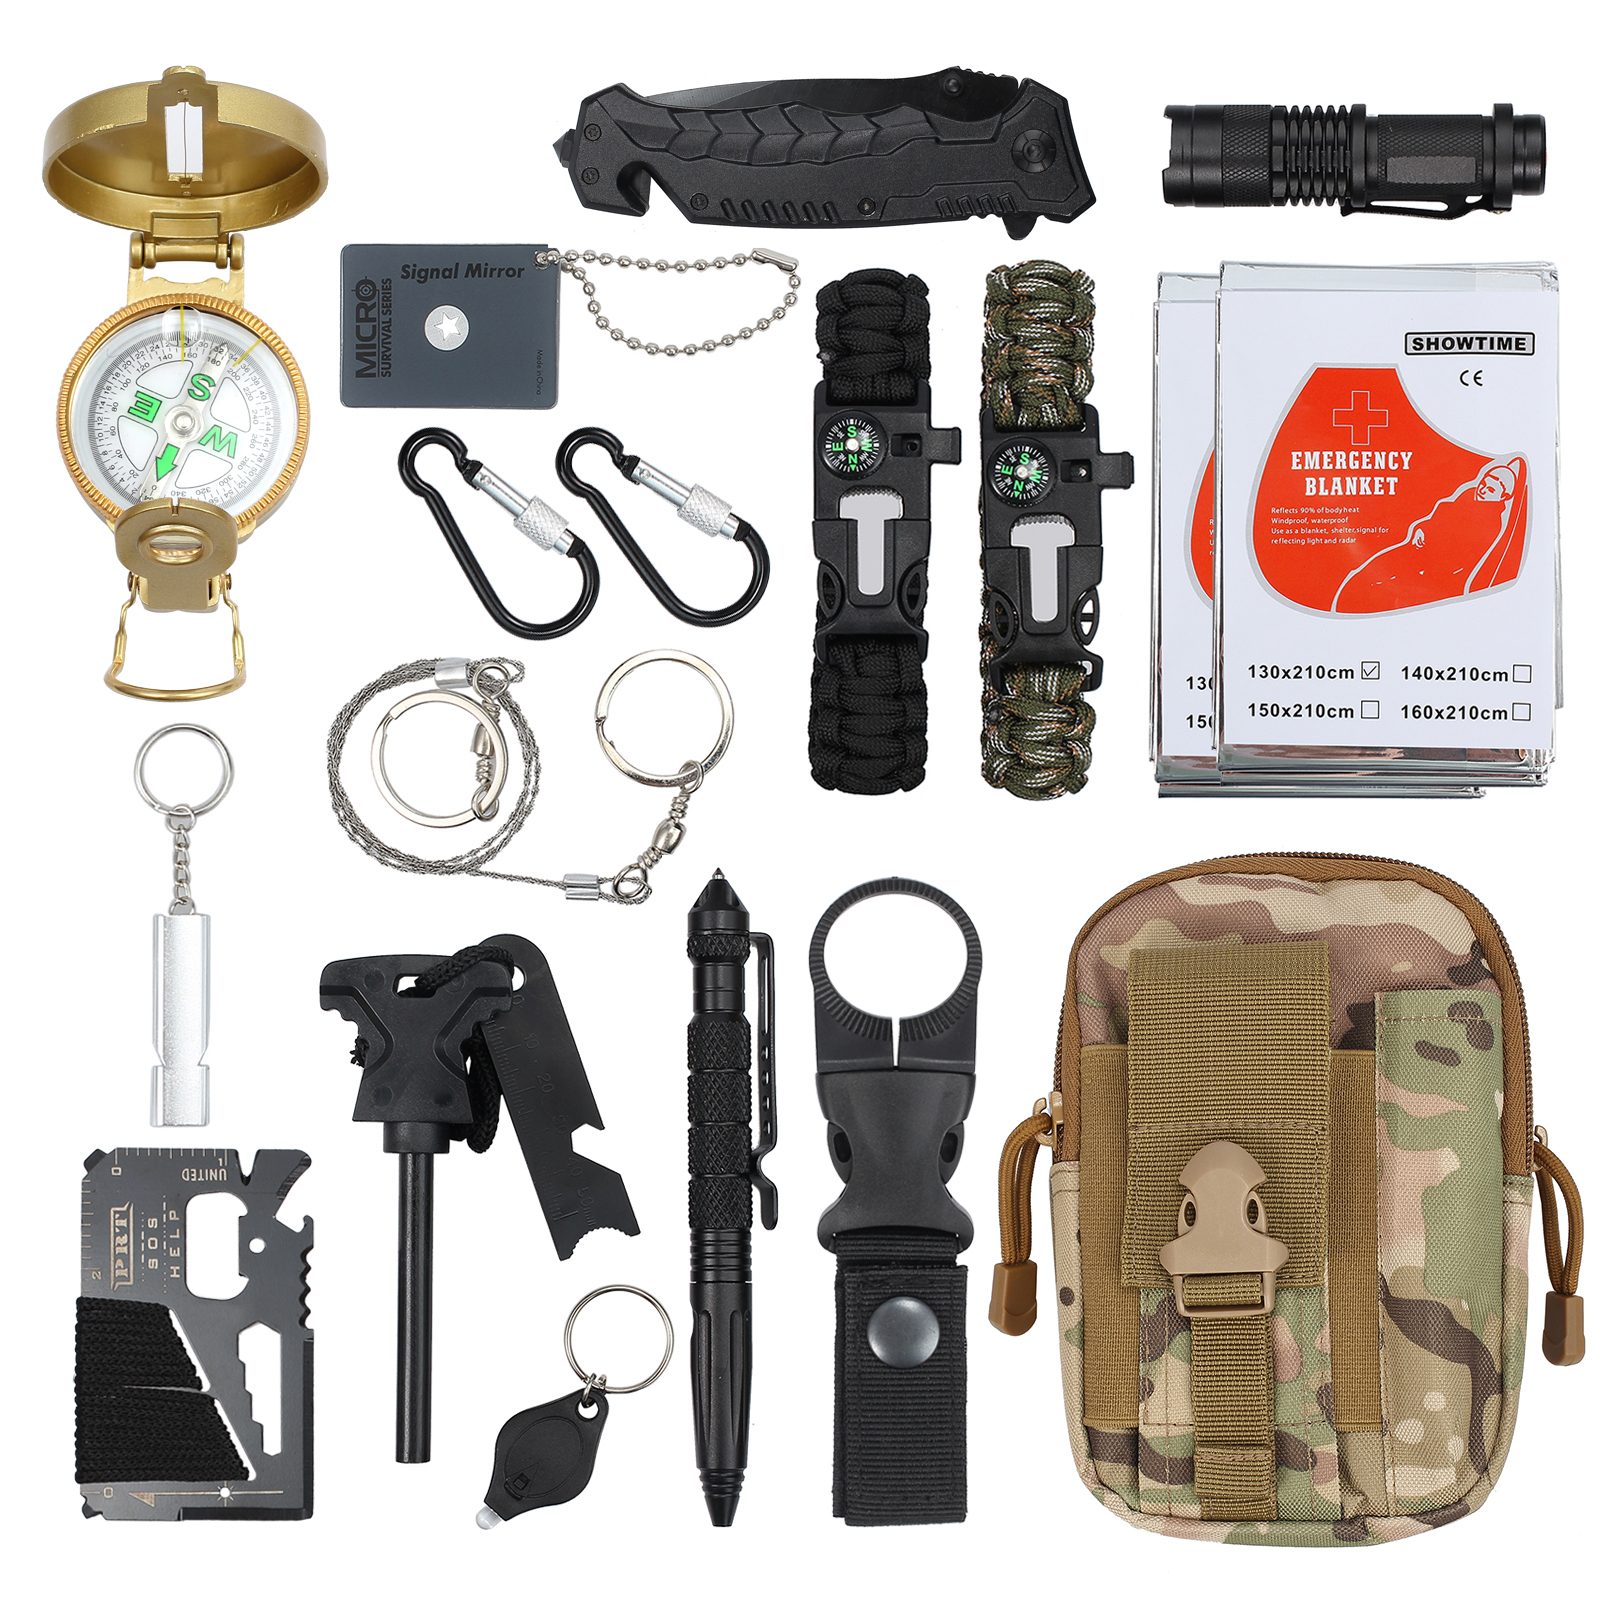 3-in-1 Keychain High Bright Led Light Flashlight Compass Whistle Mini Durable Aluminum Camping Survival Hiking Practical Tool 21 Making Things Convenient For The People Novelty & Special Use